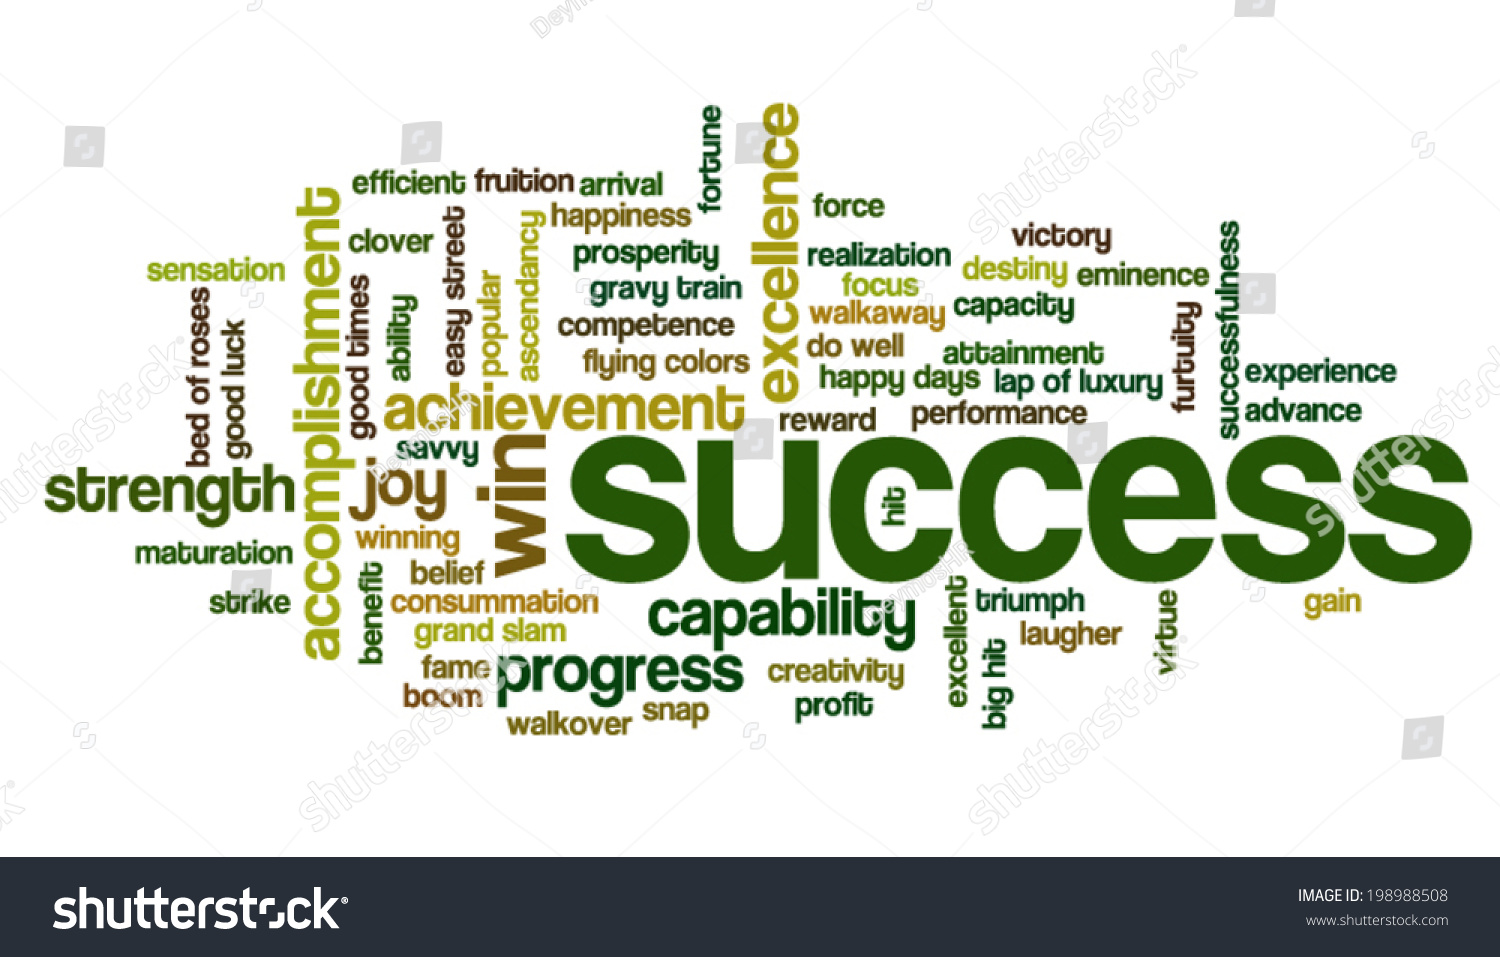 word cloud containing words related success stock vector  word cloud containing words related to success accomplishment winning achievement strength